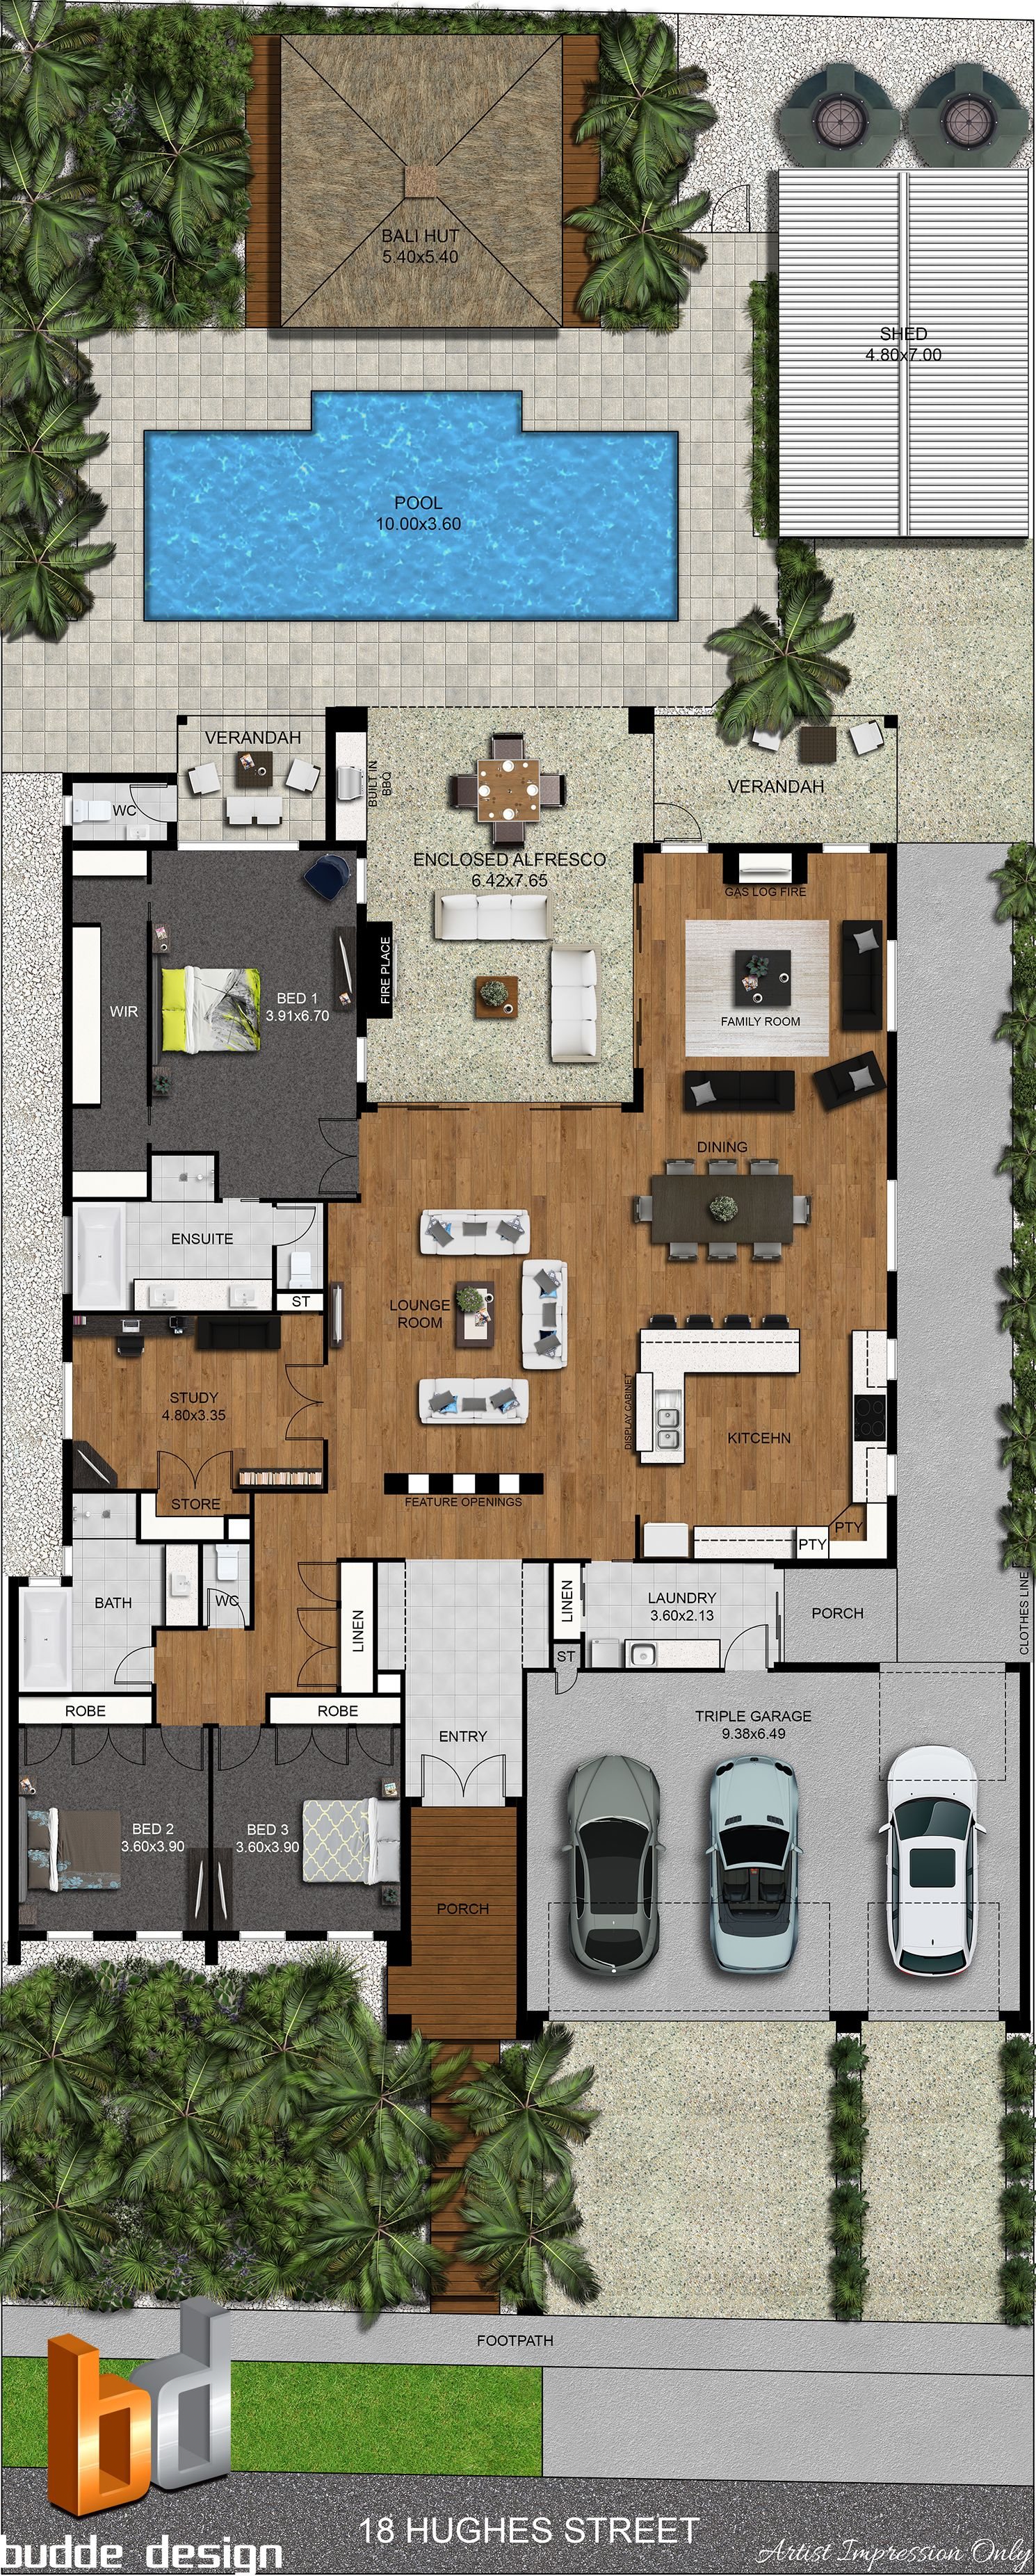 2D colour floor plan and 2D colour